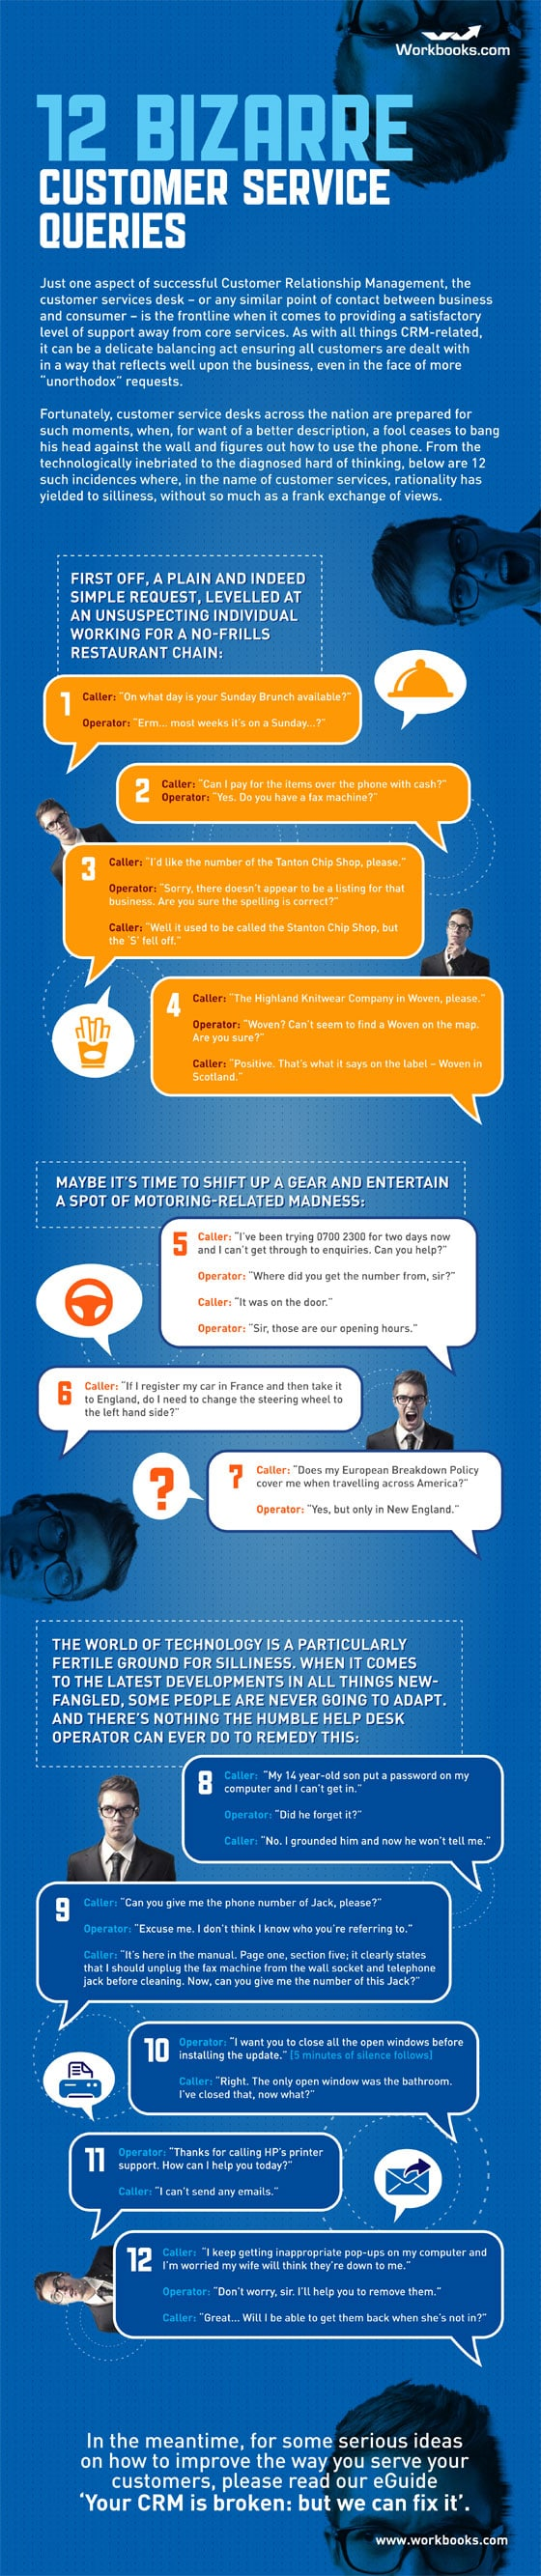 12 Hilariously Bizarre Yet Real Customer Service Queries [Infographic]